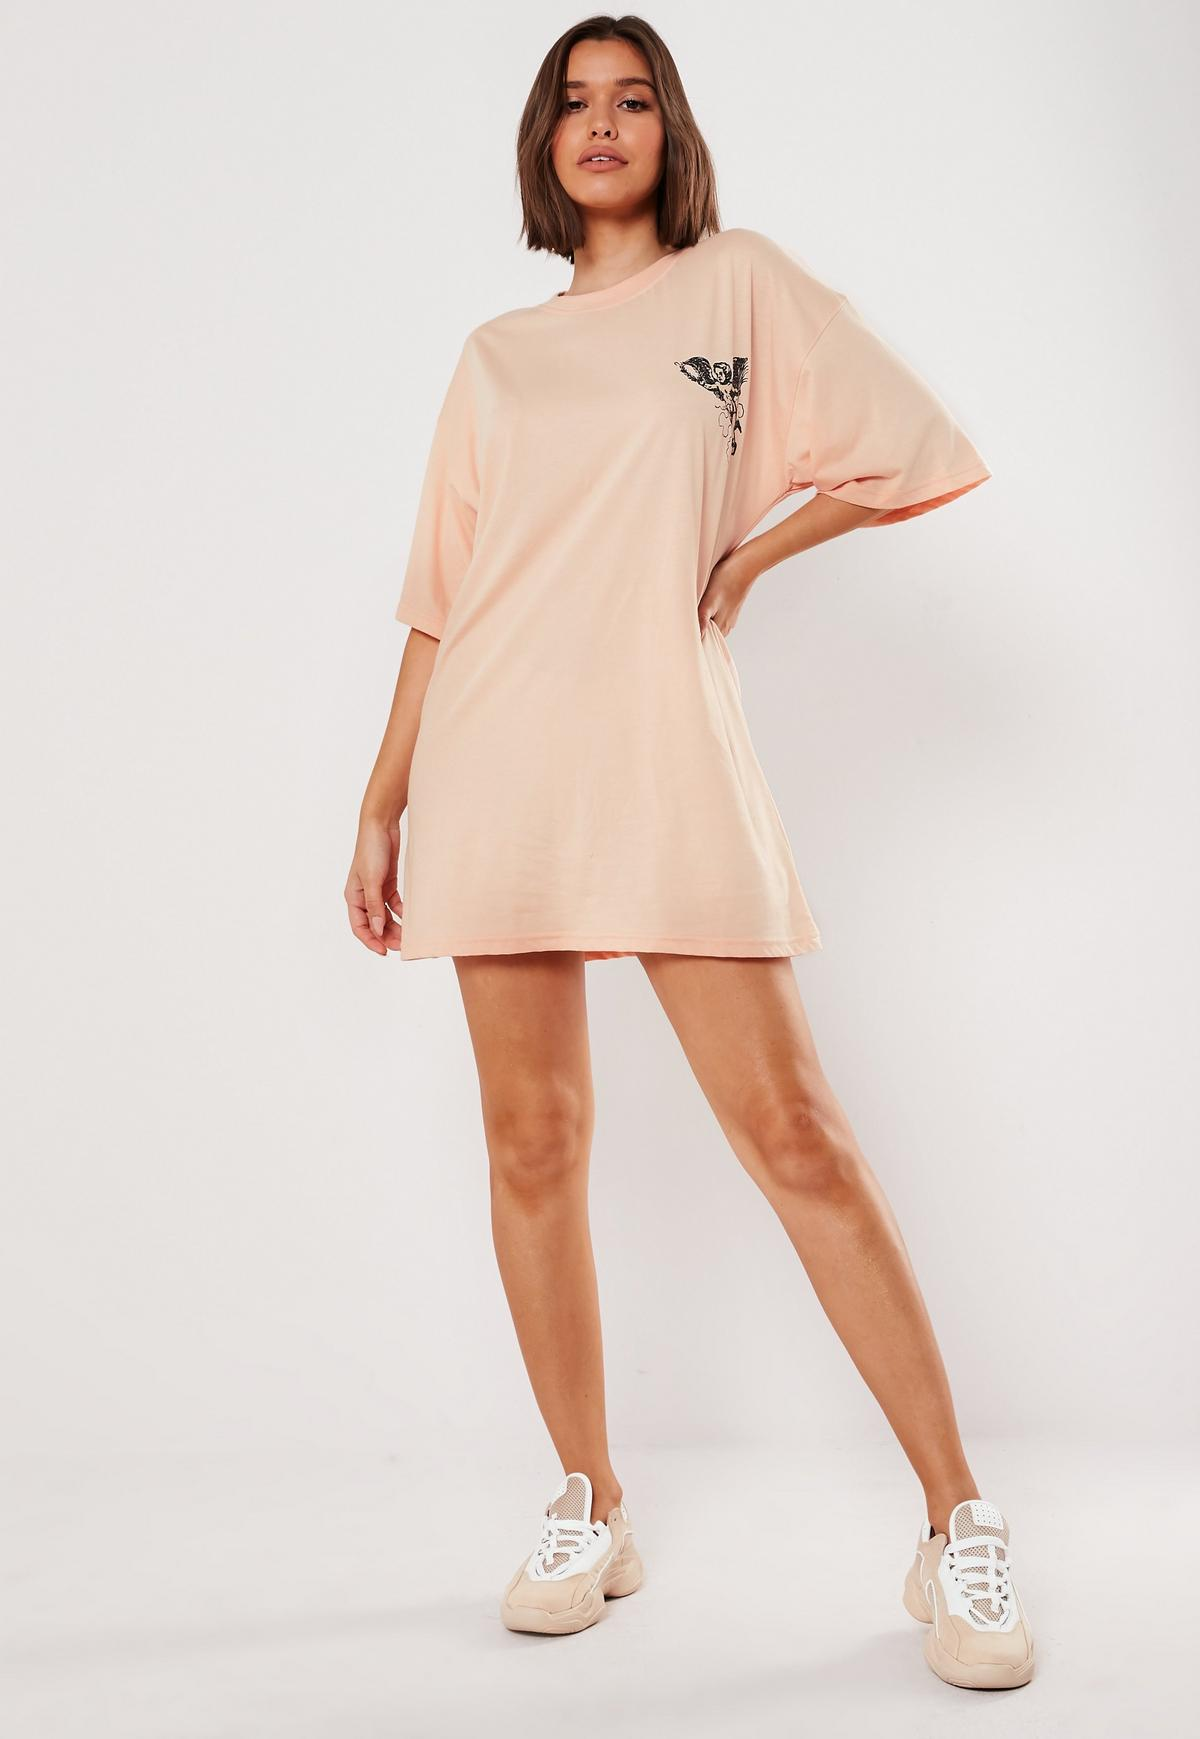 Peach Oversized Palm Springs Graphic T Shirt Dress